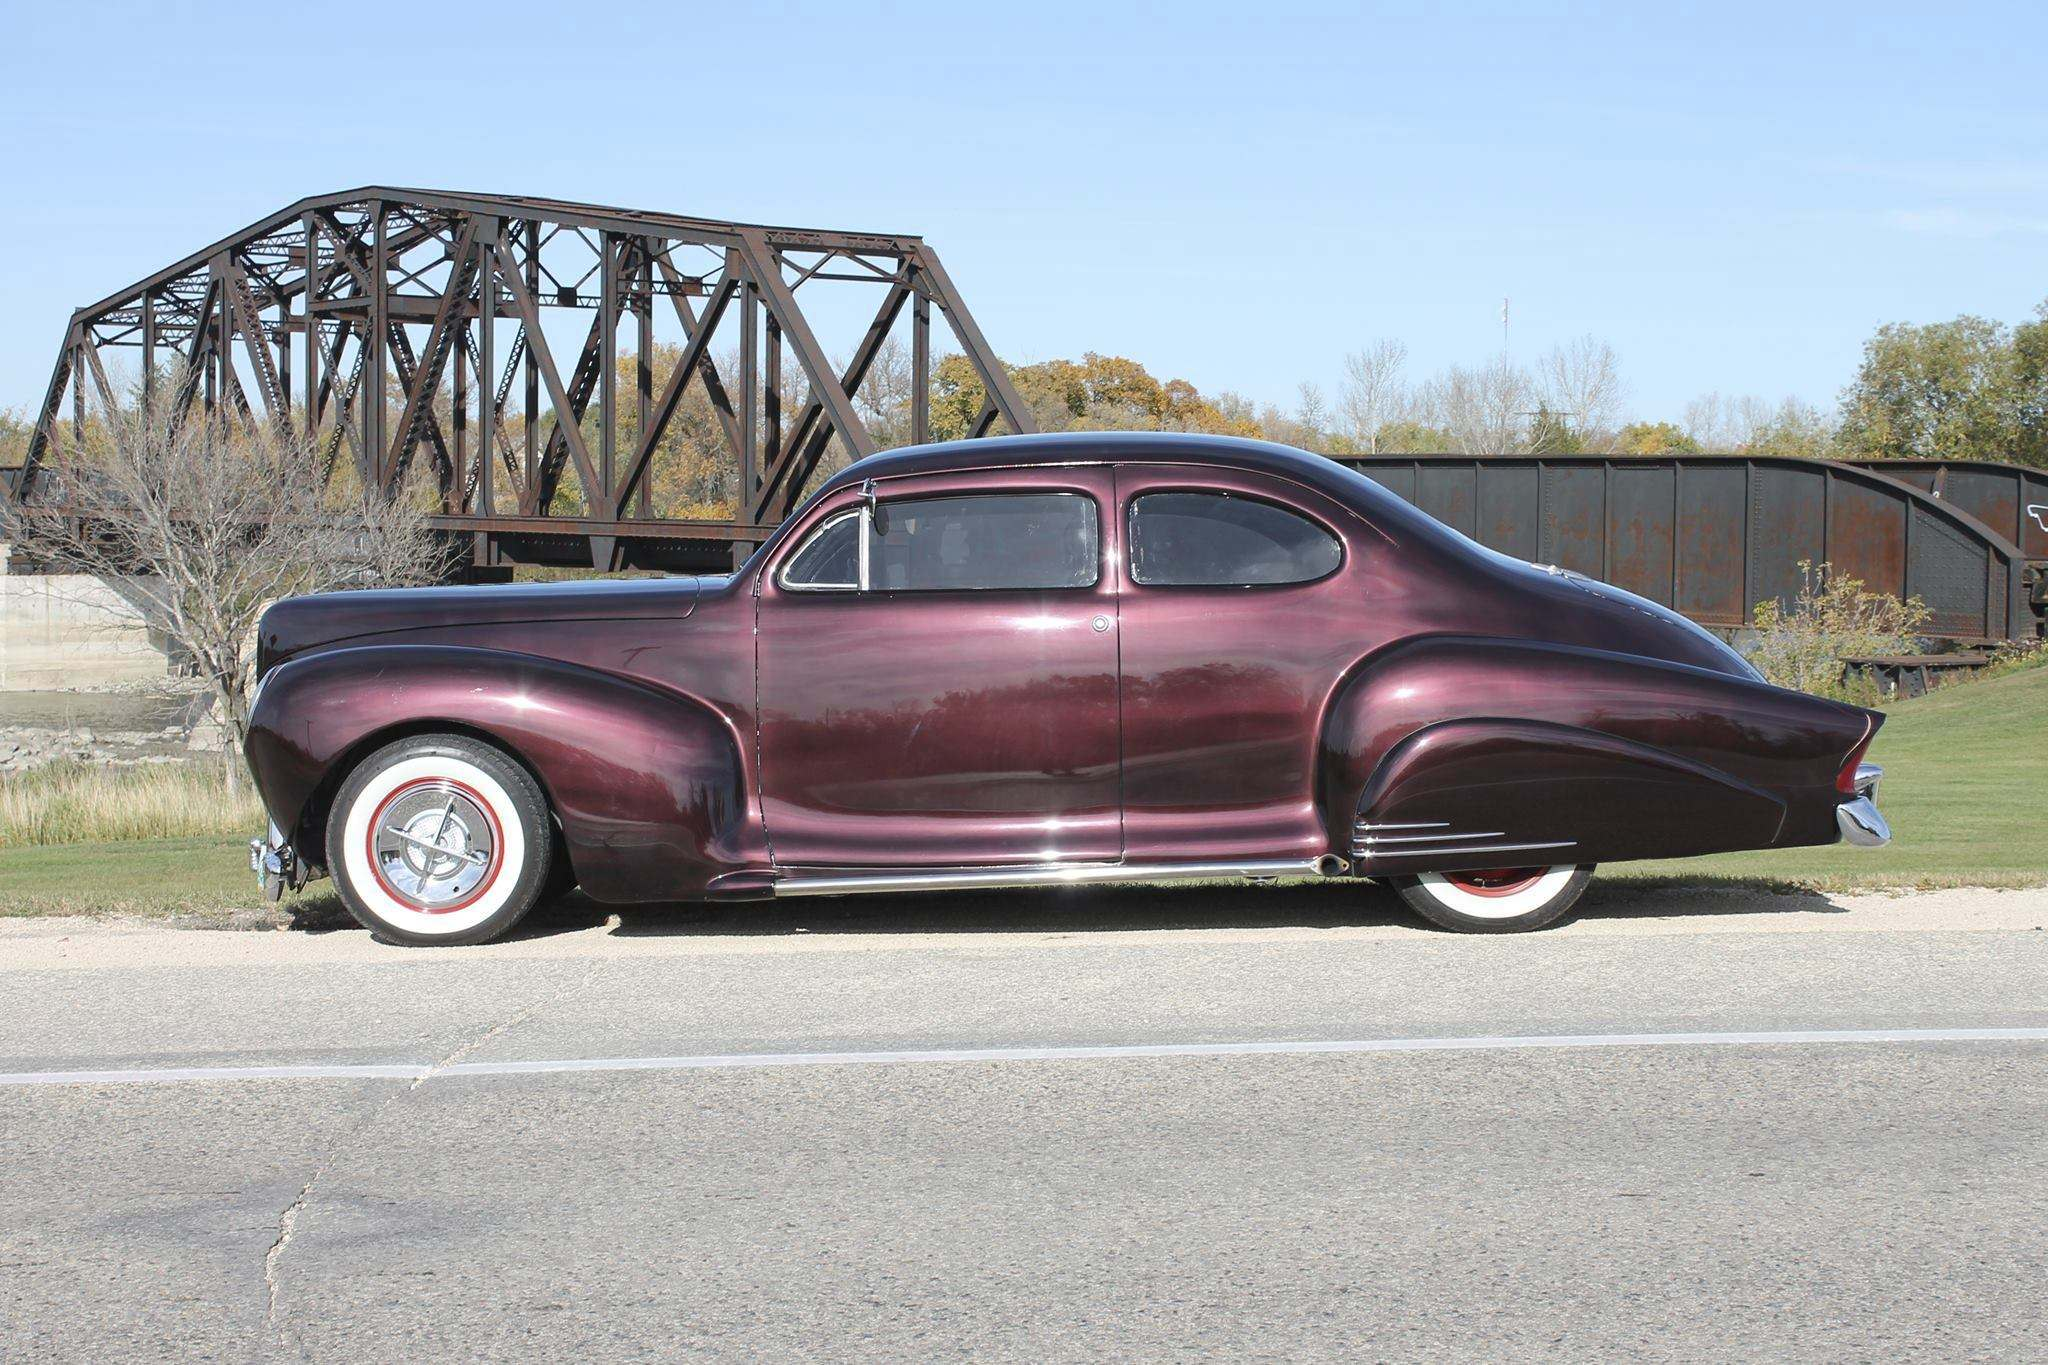 Photos by Lorne EdwardsThe car has full-fender skirts in the rear with chrome accent bars. The rear fenders were also extended to accommodate classic Packard tailamps.